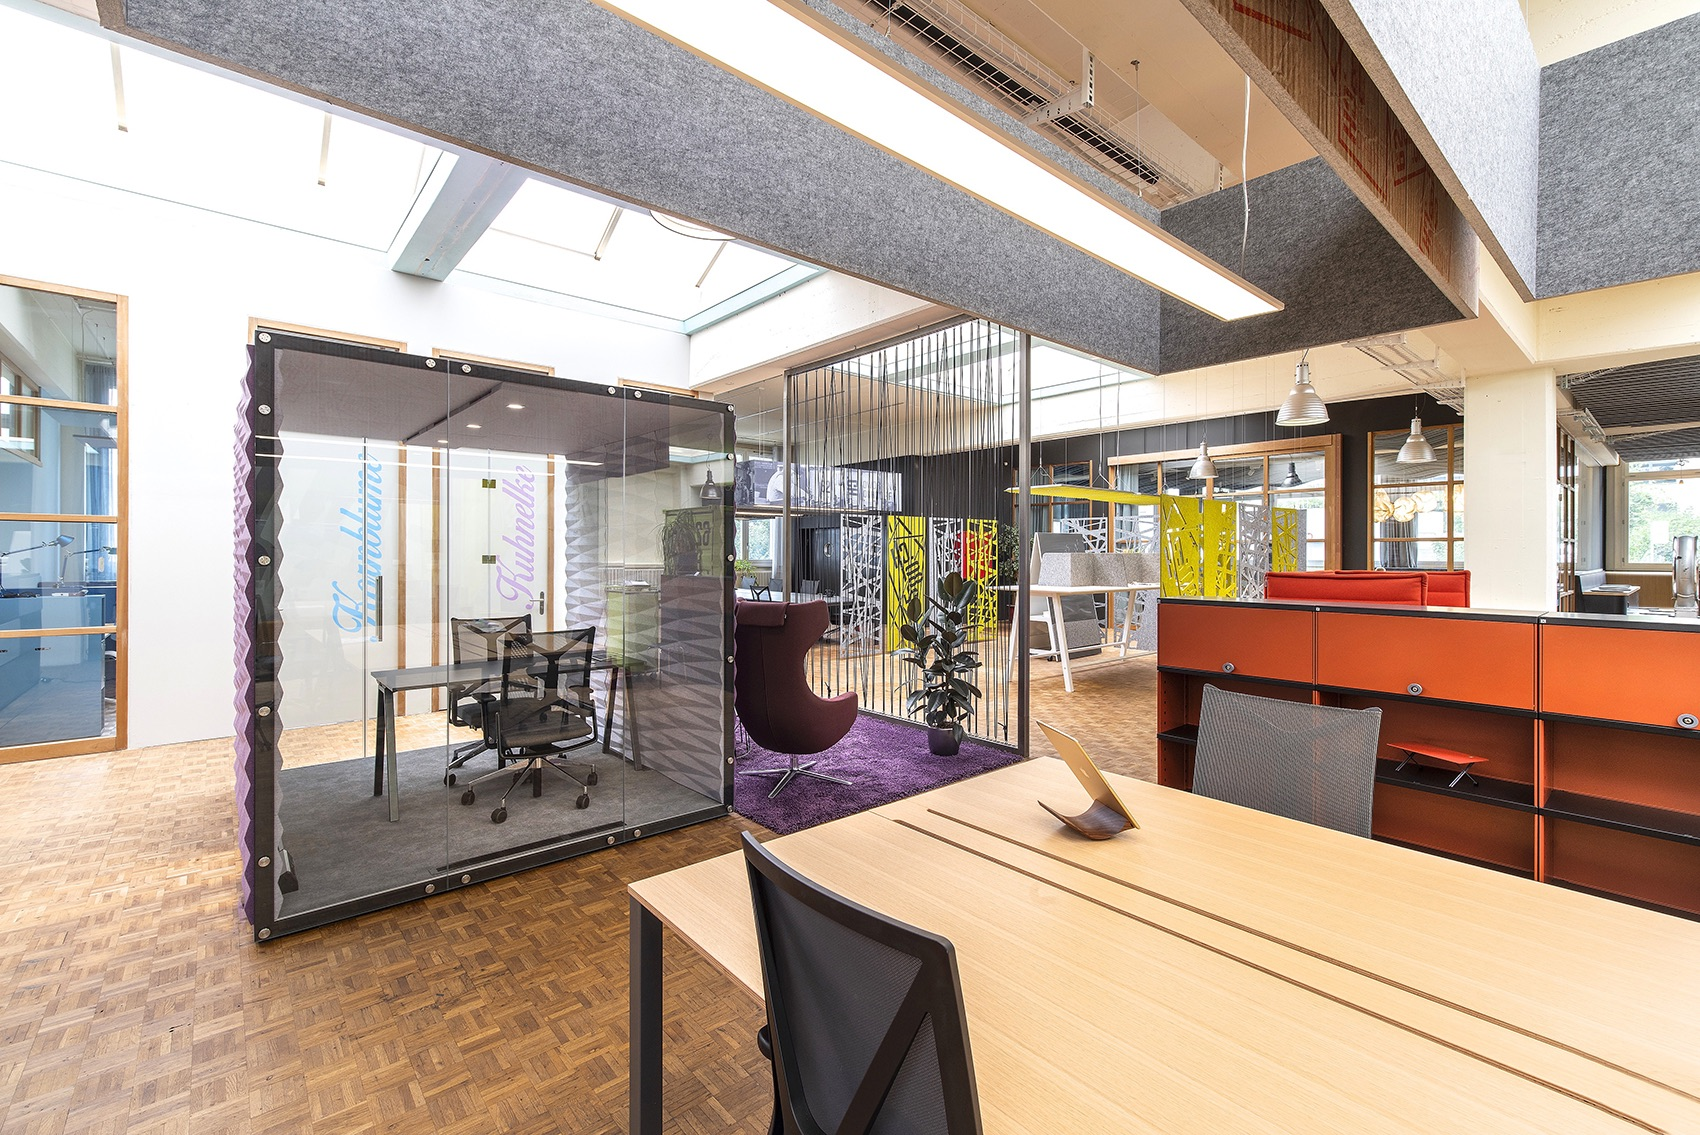 6280-coworking-switzerland-office-16